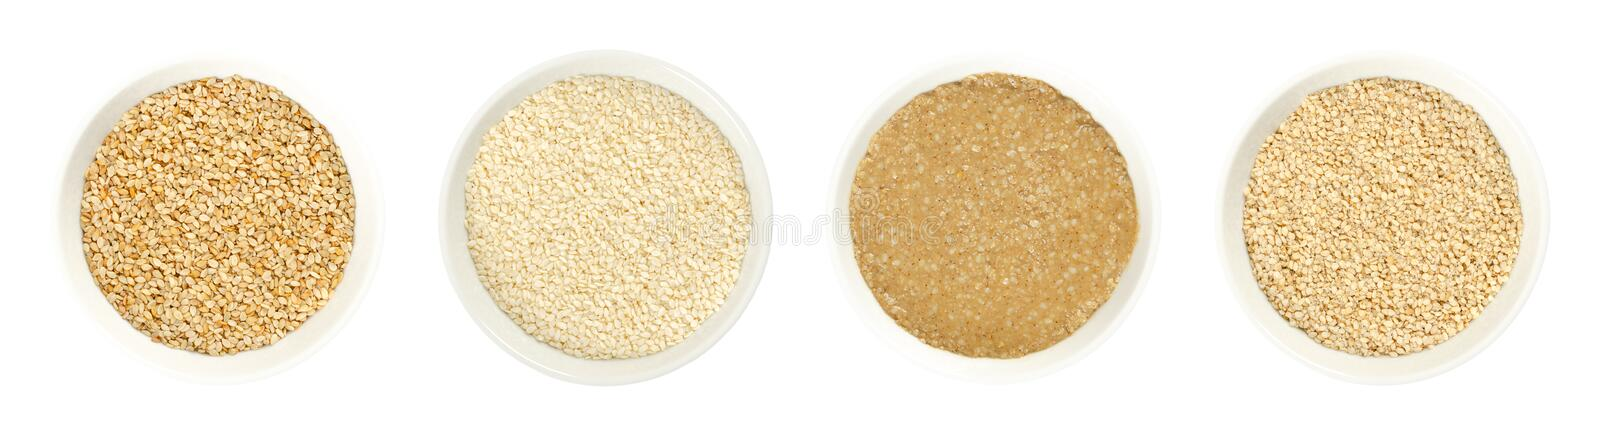 Sesame in bowls, on white background royalty free stock photos